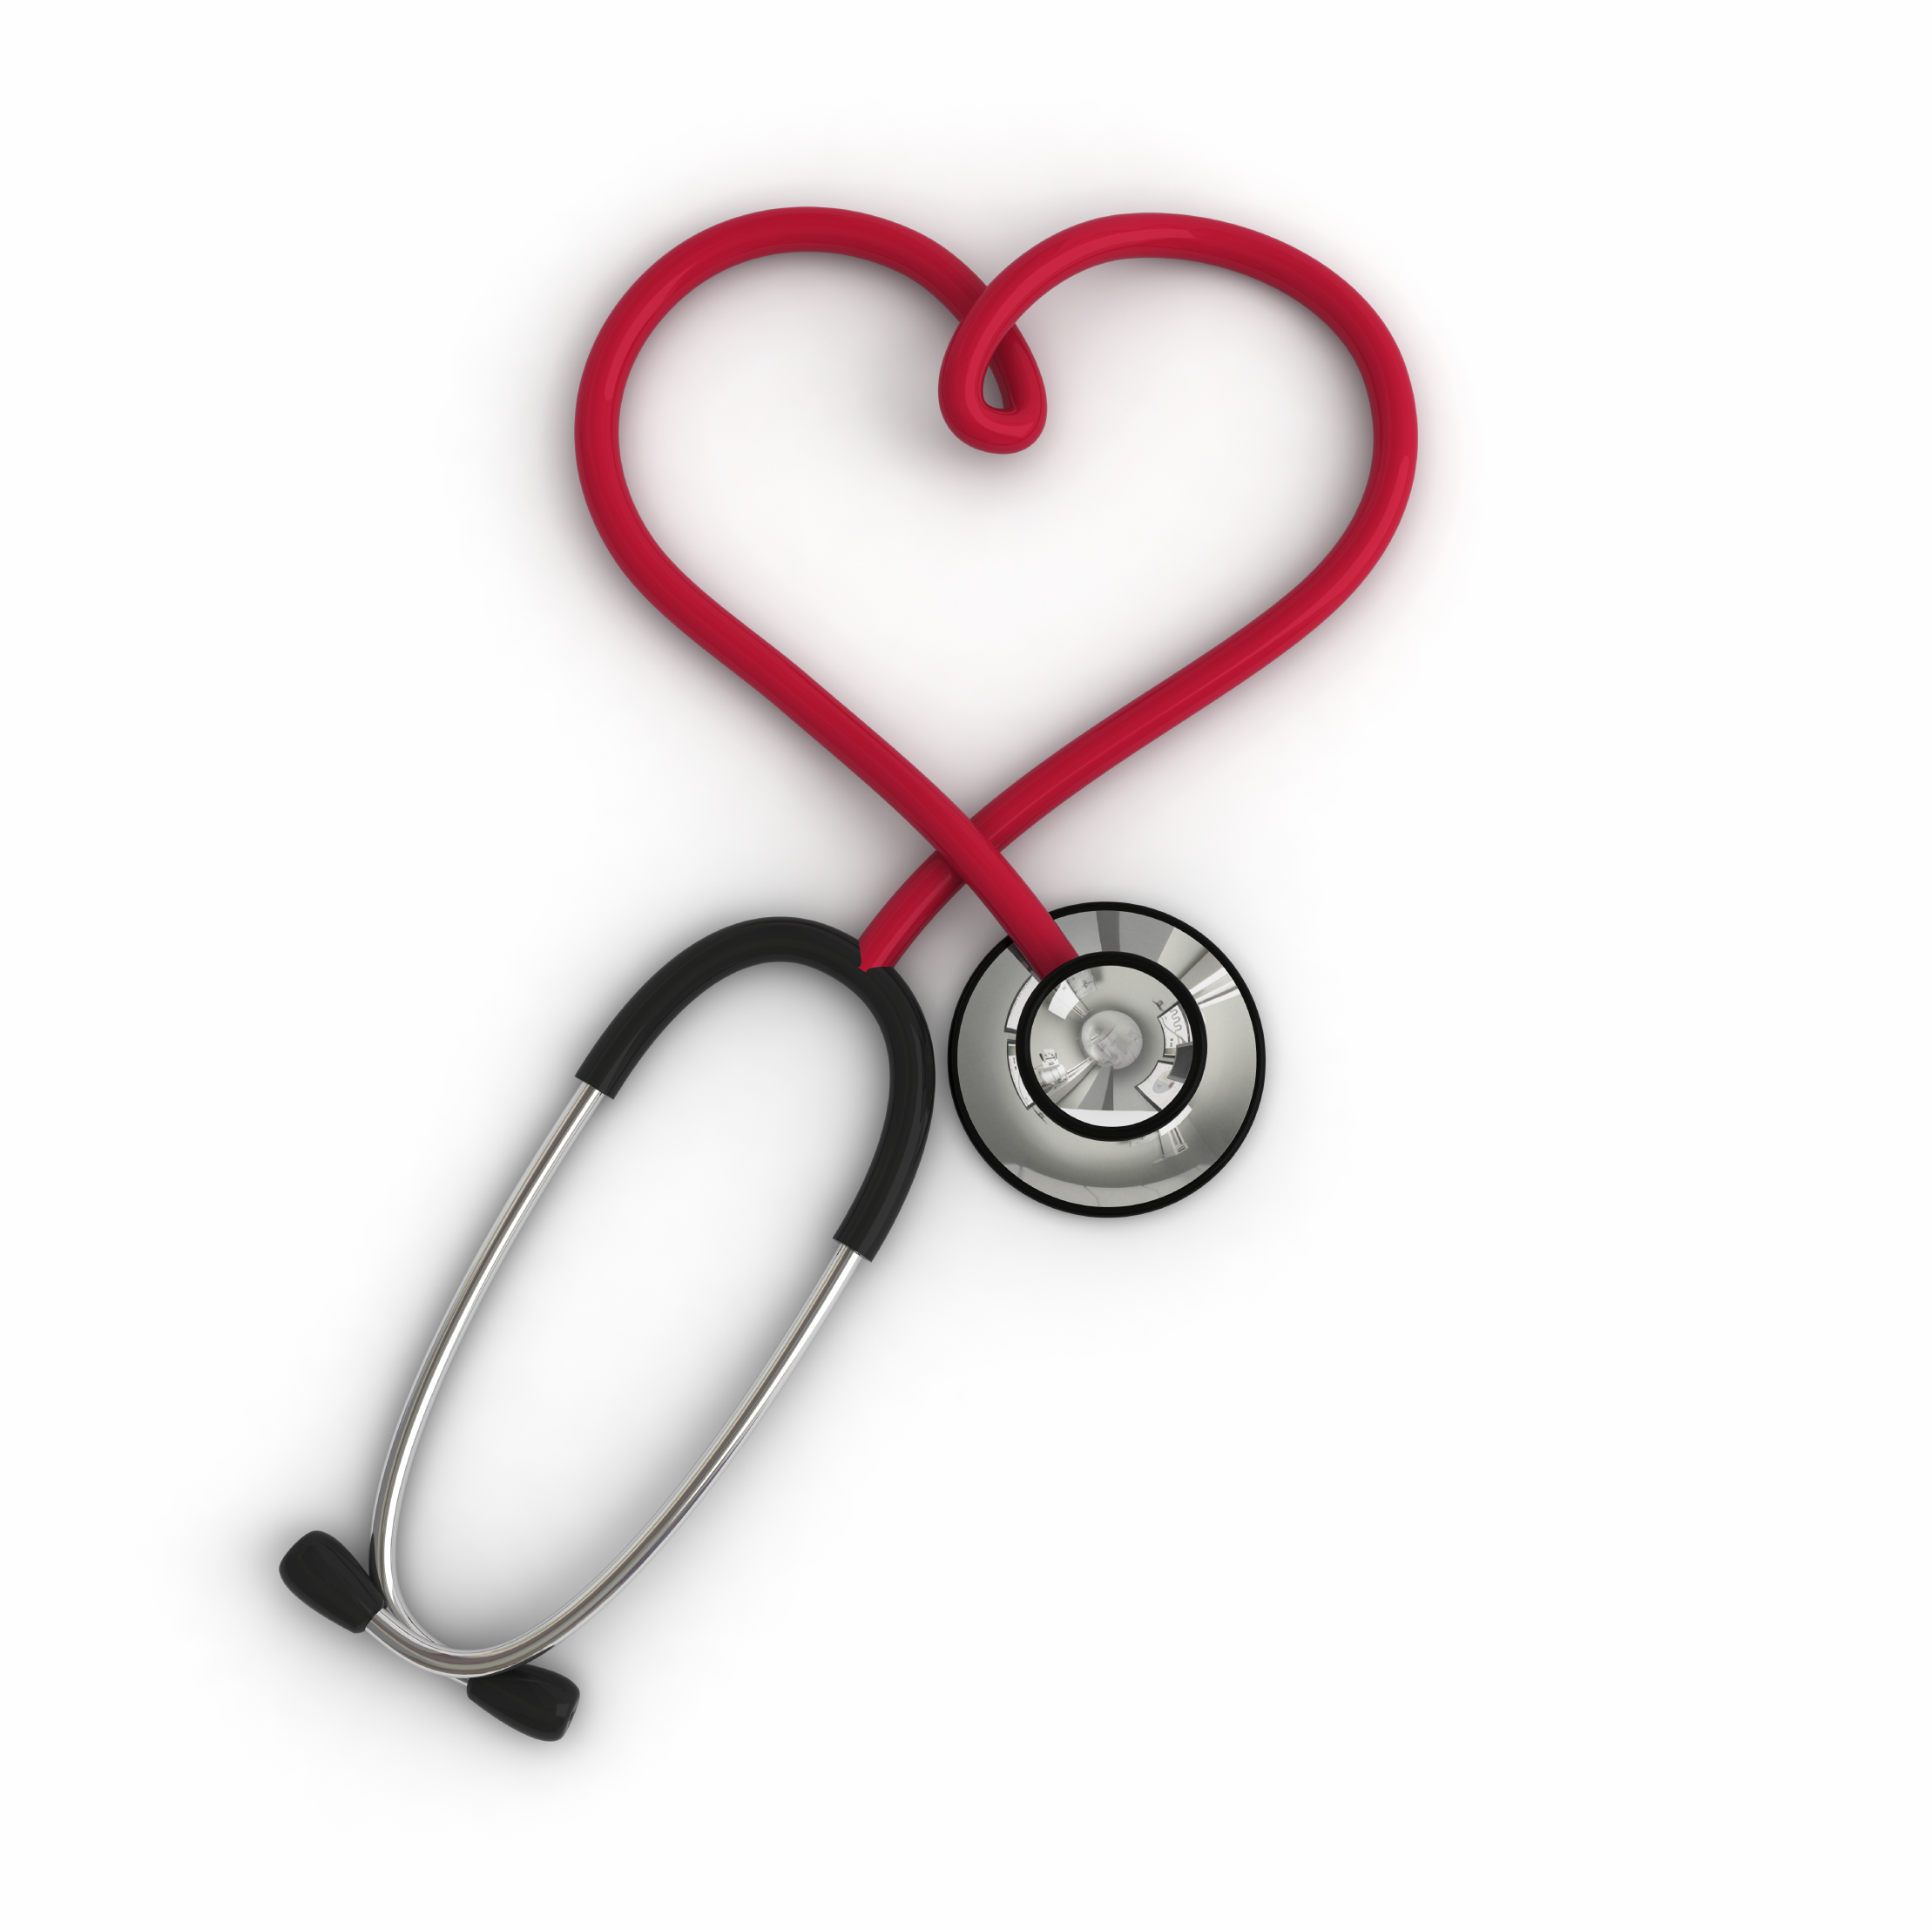 Heart-shaped clipart stethescope #6